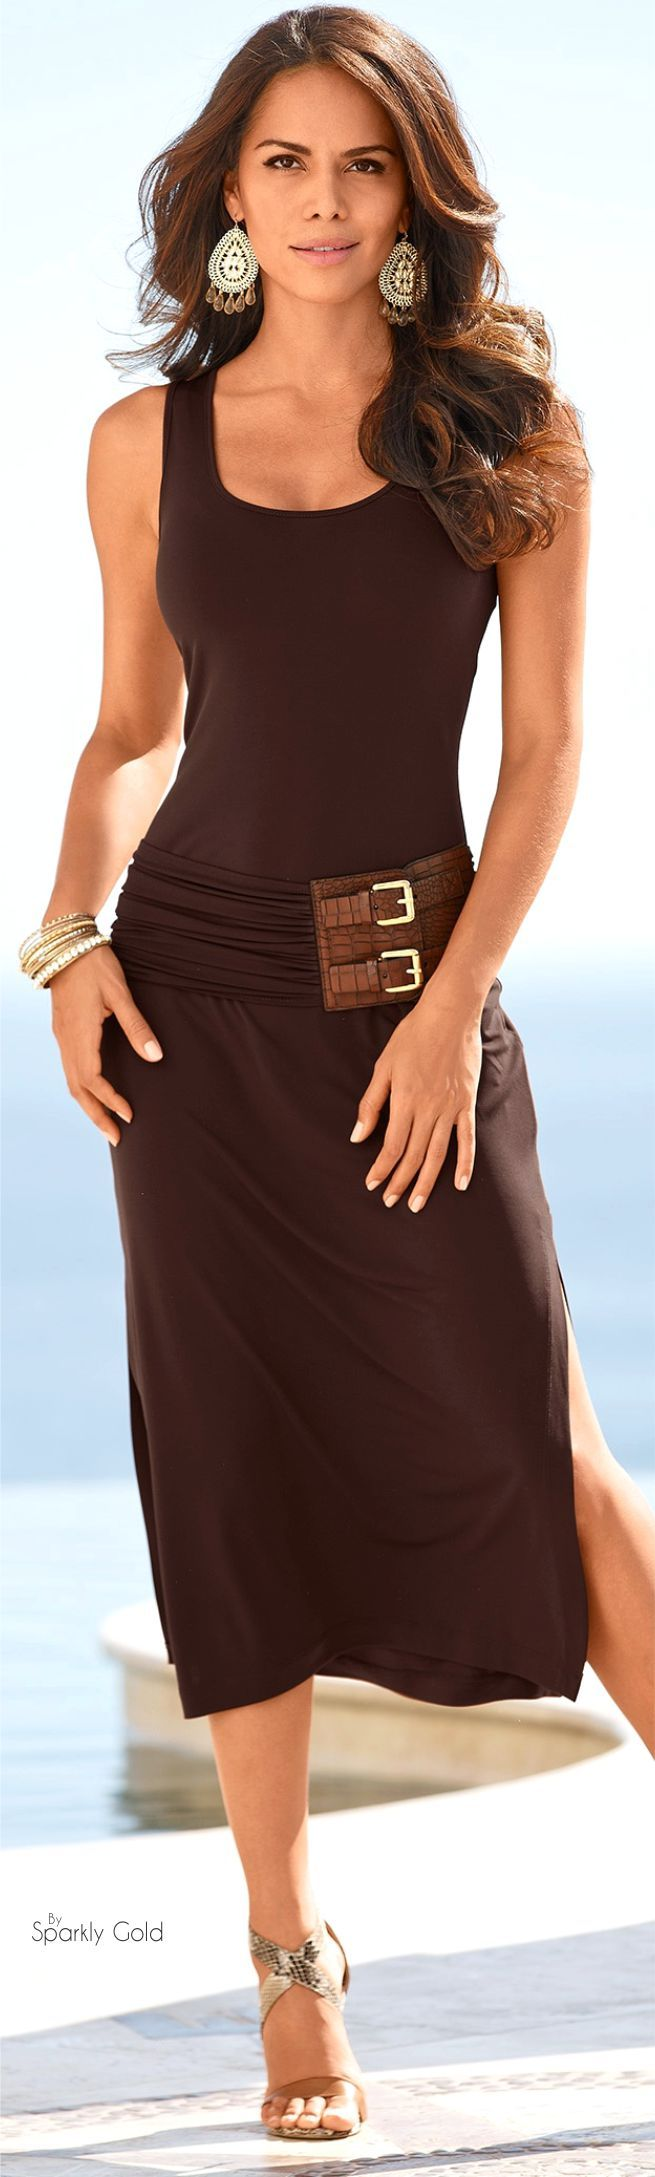 brown dress  women fashion outfit clothing style apparel @roressclothes closet ideas